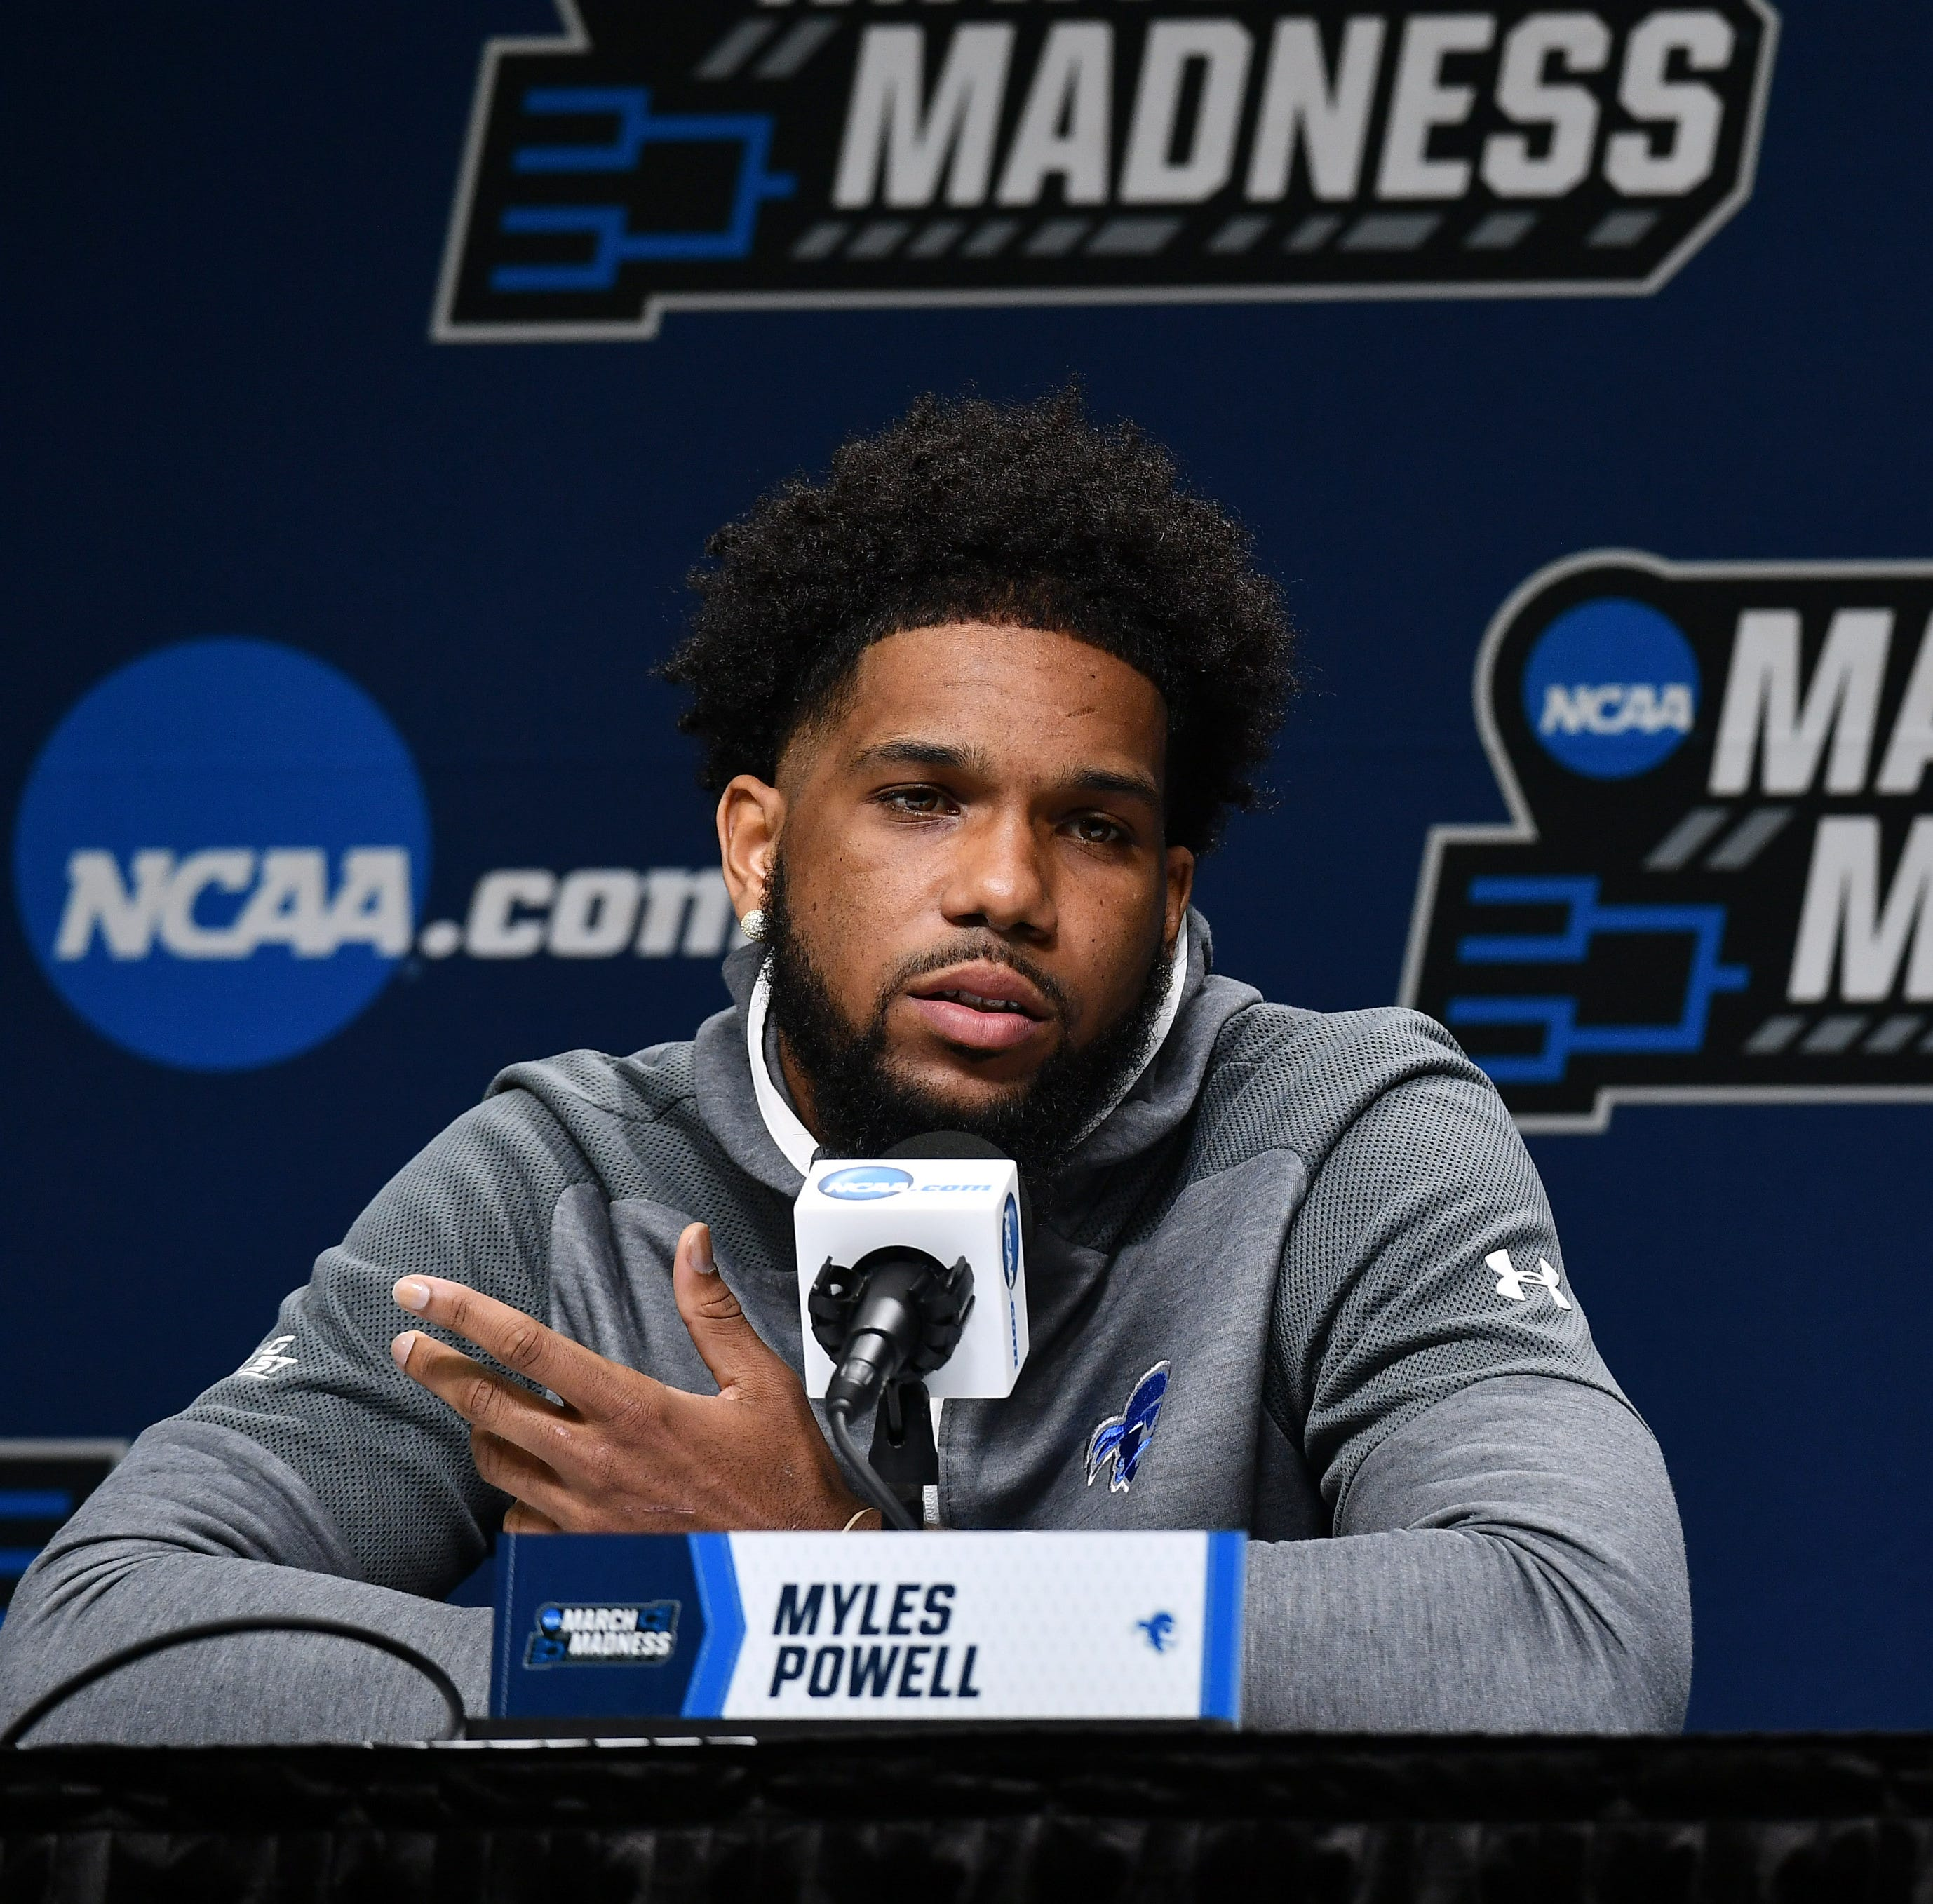 Seton Hall vs. Wofford: Will the nation finally notice Myles Powell?